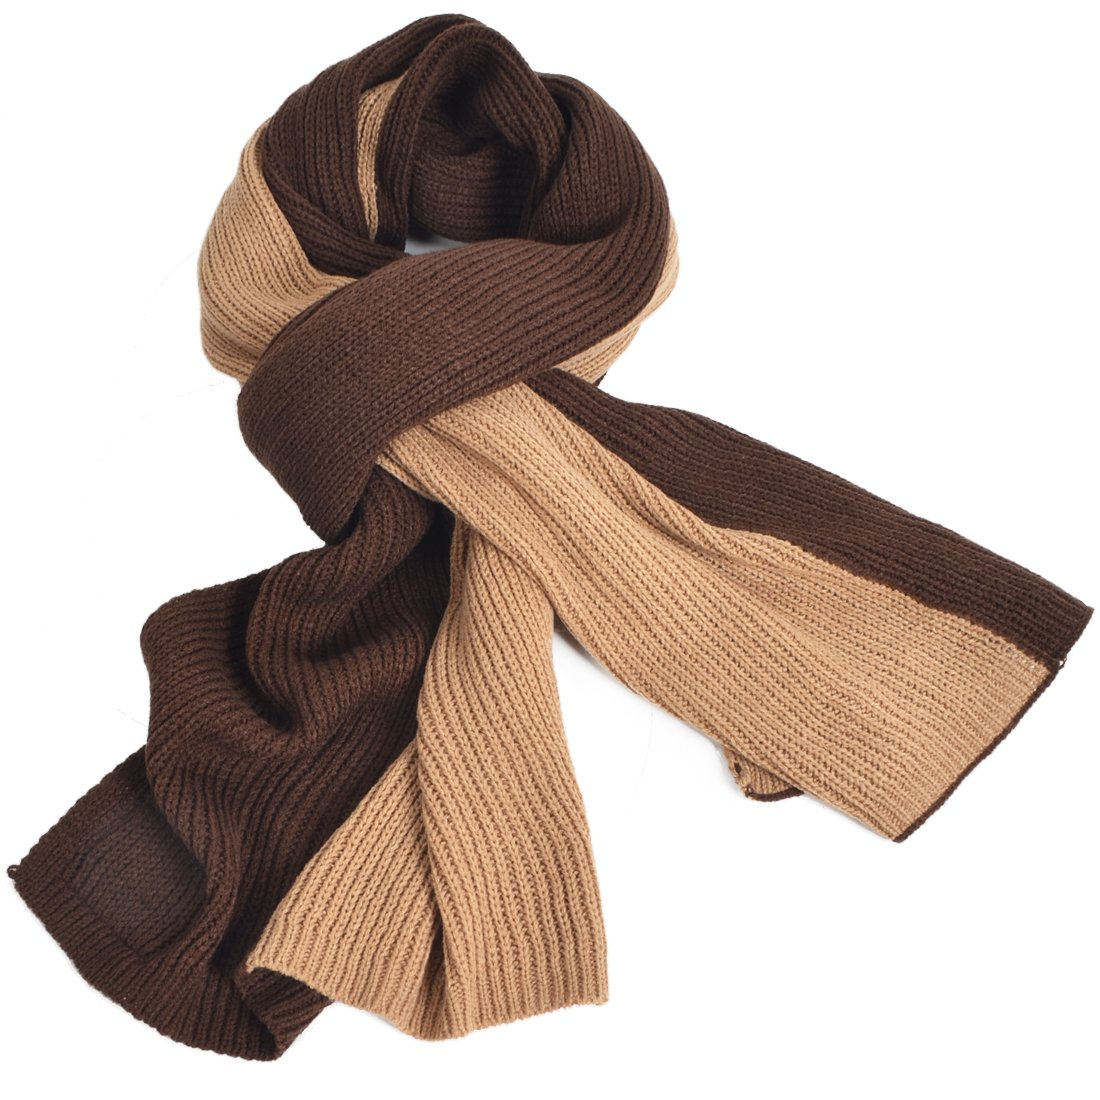 Mens Long Scarf Soft Warm Thick Knit Winter Scarves Plaid Black